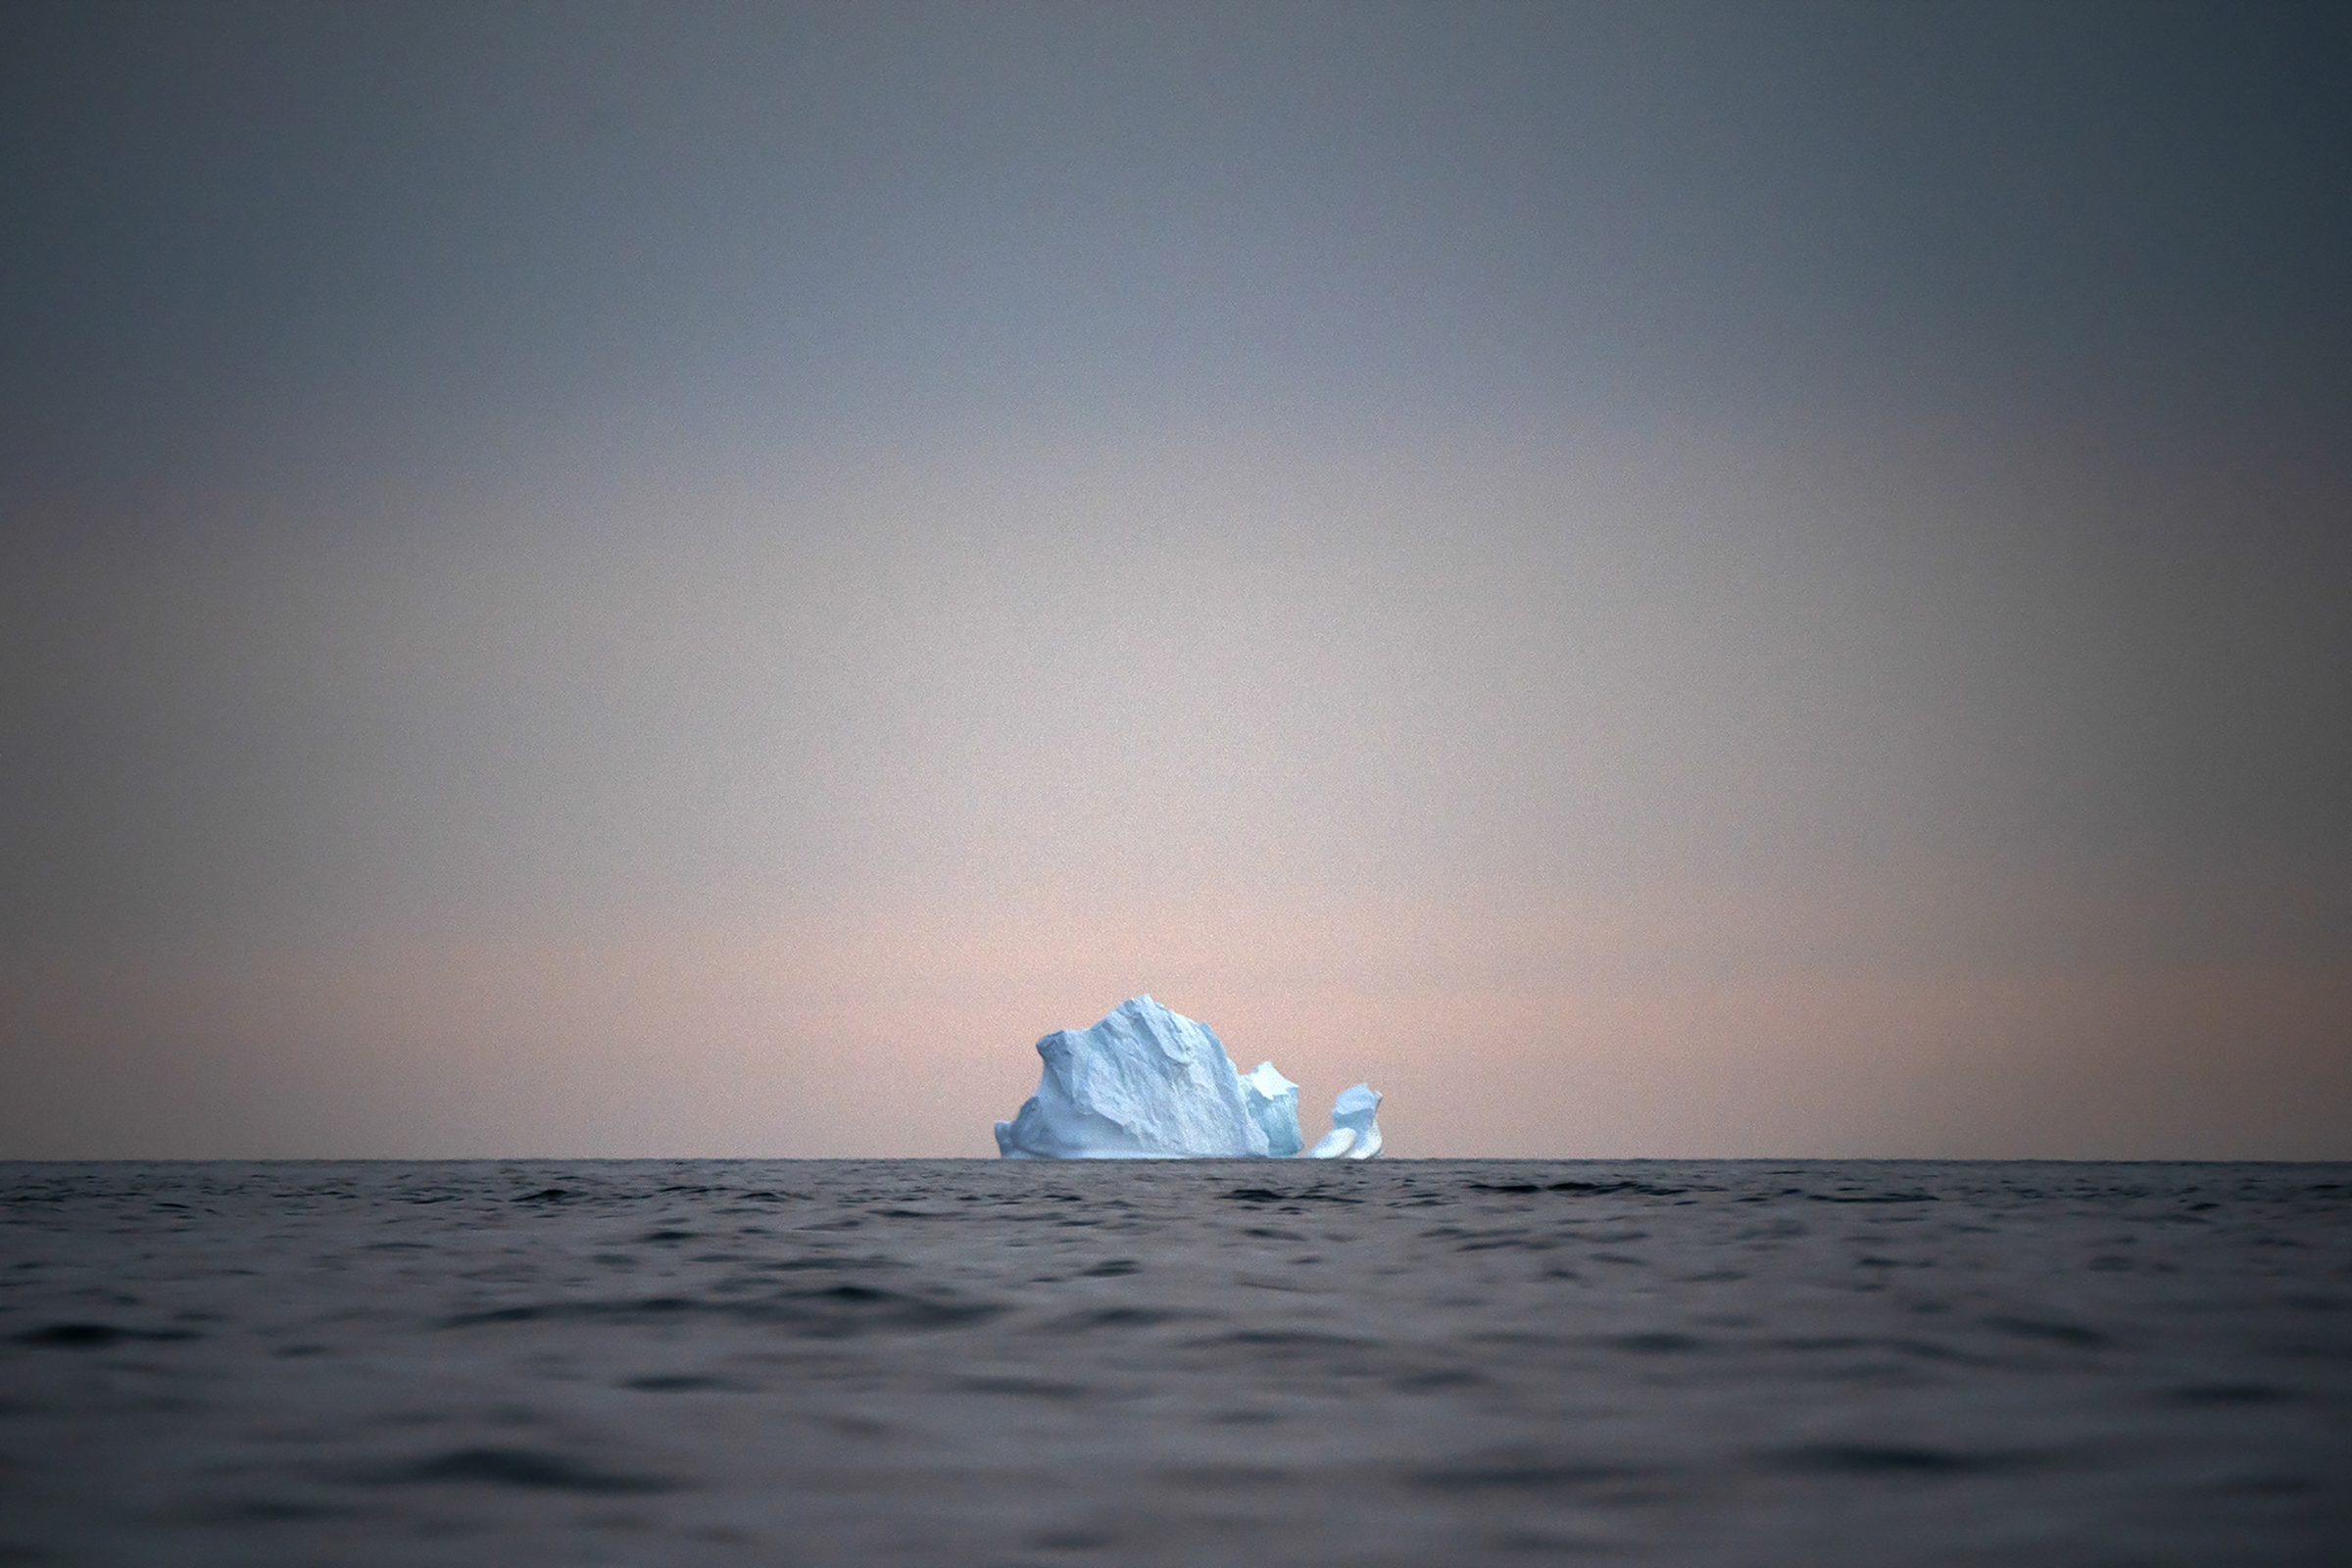 In this Aug. 15, 2019, photo, a large Iceberg floats away as the sun sets near Kulusuk, Greenland.